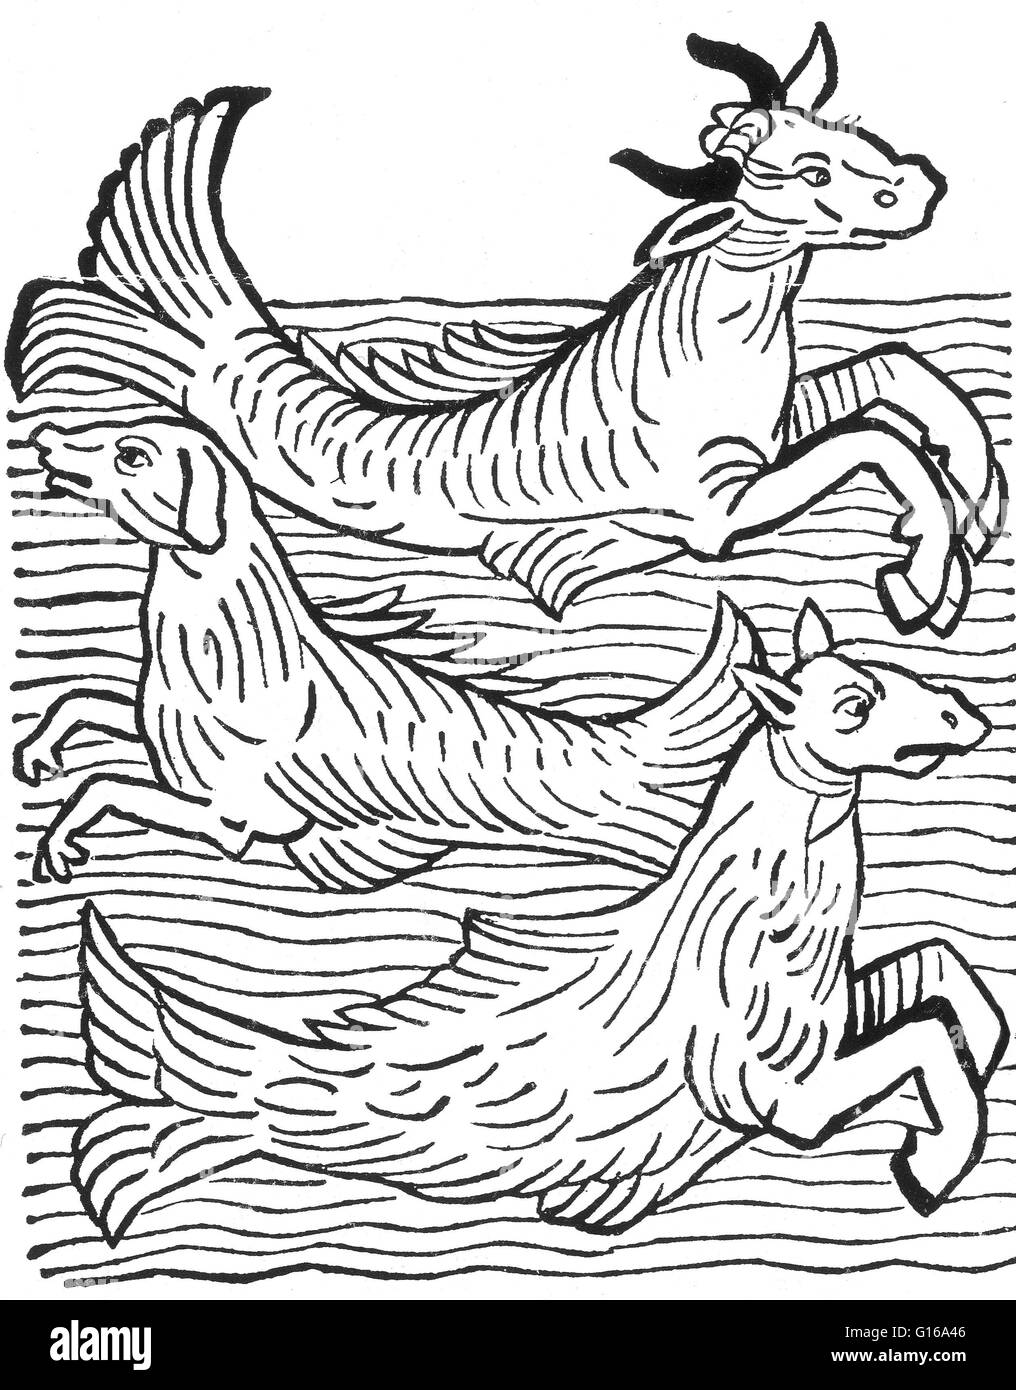 Woodcut of three mythical sea creatures from Hortus Sanitatis printed by Jacob Meyderbach, 1491. Sea cow, sea dog, - Stock Image